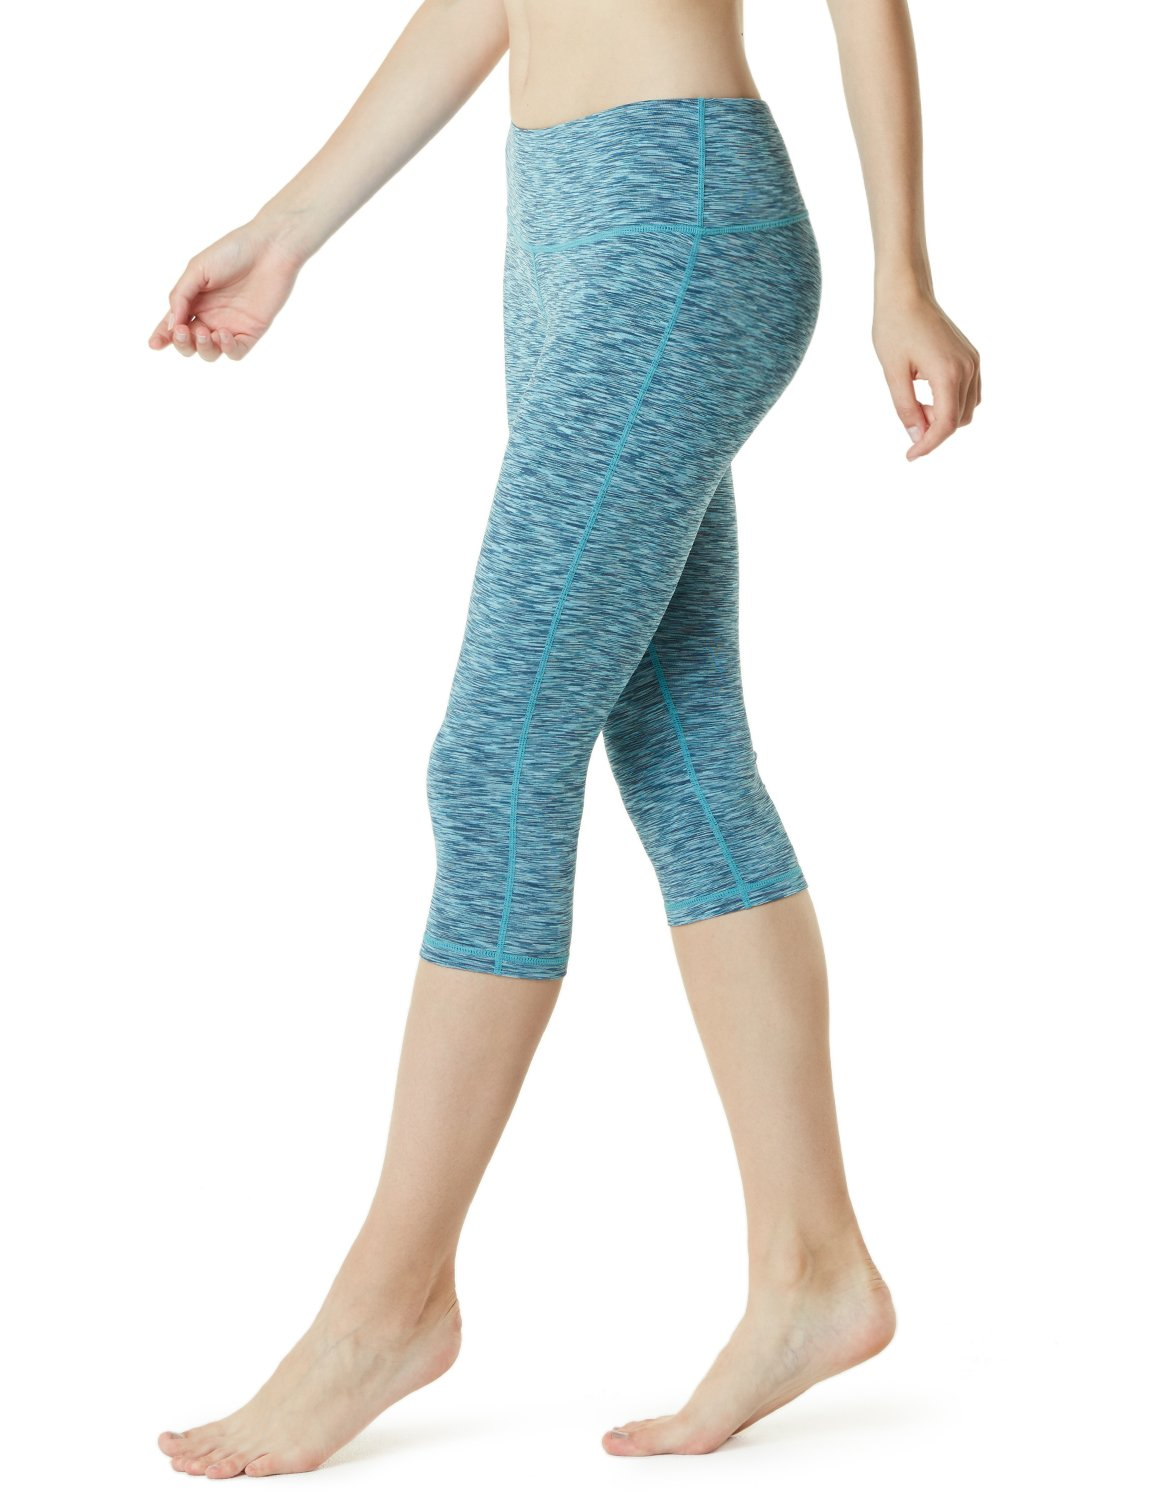 TSLA Yoga 17 Inches Capri Mid-Waist Pants w